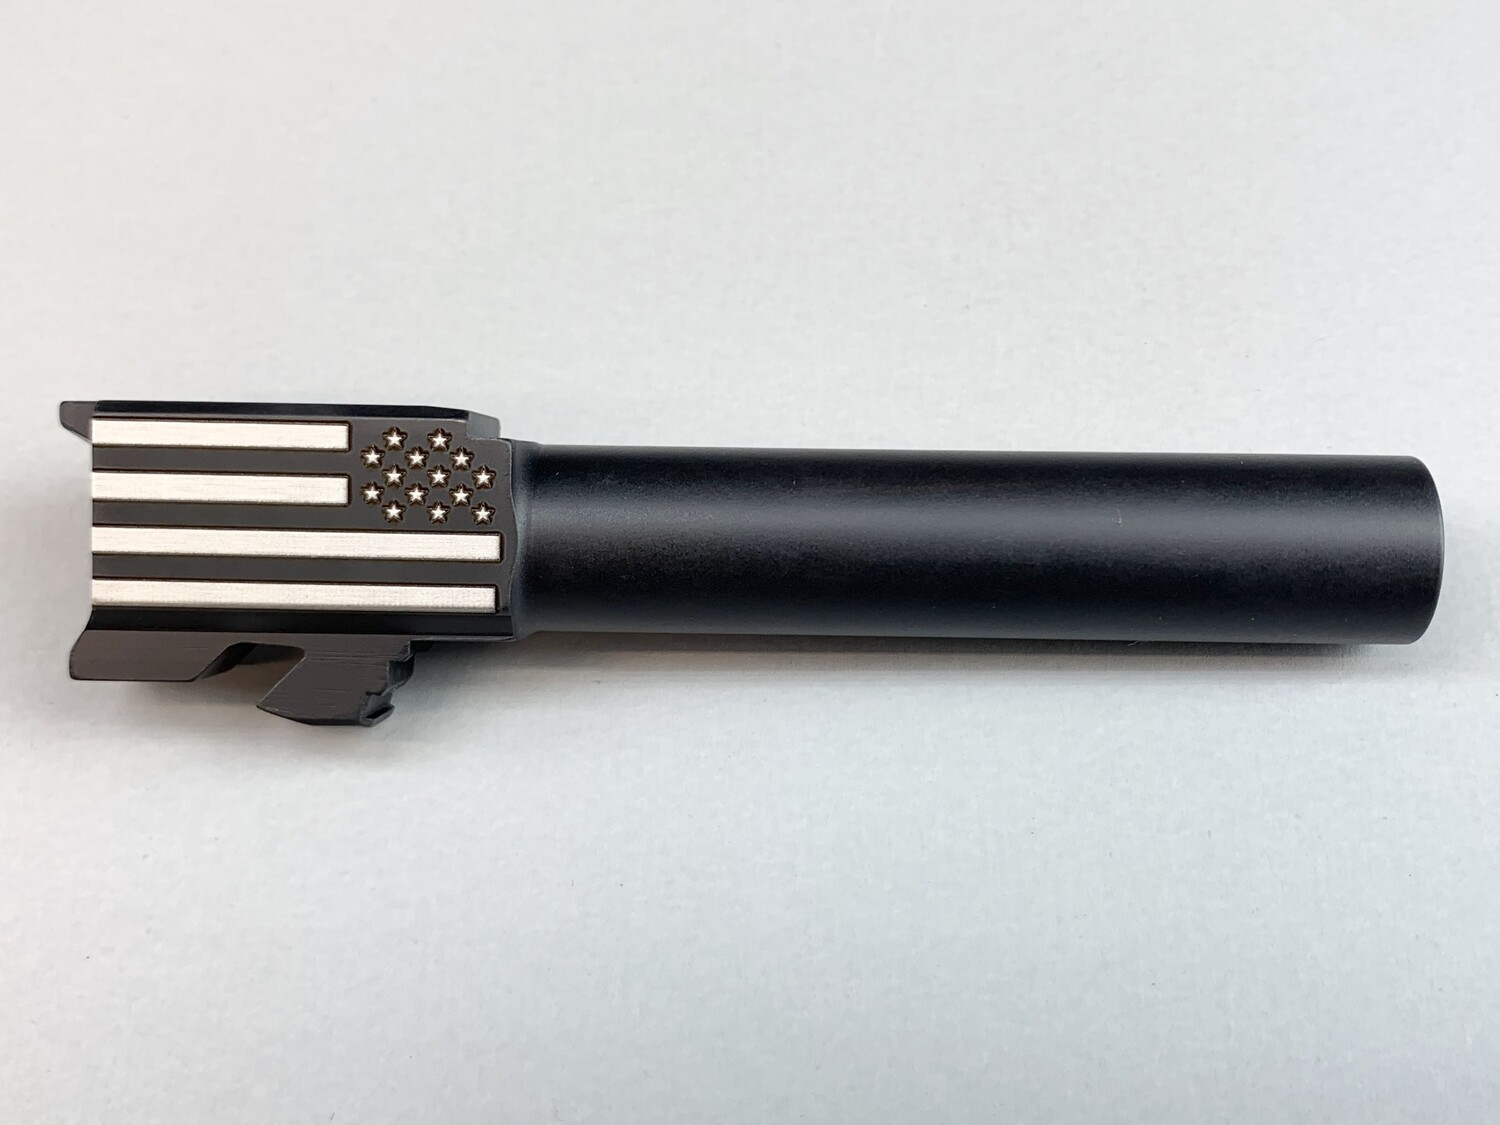 Glock 23 Battle Flag Barrel - 40 S&W - Black Nitride Coated